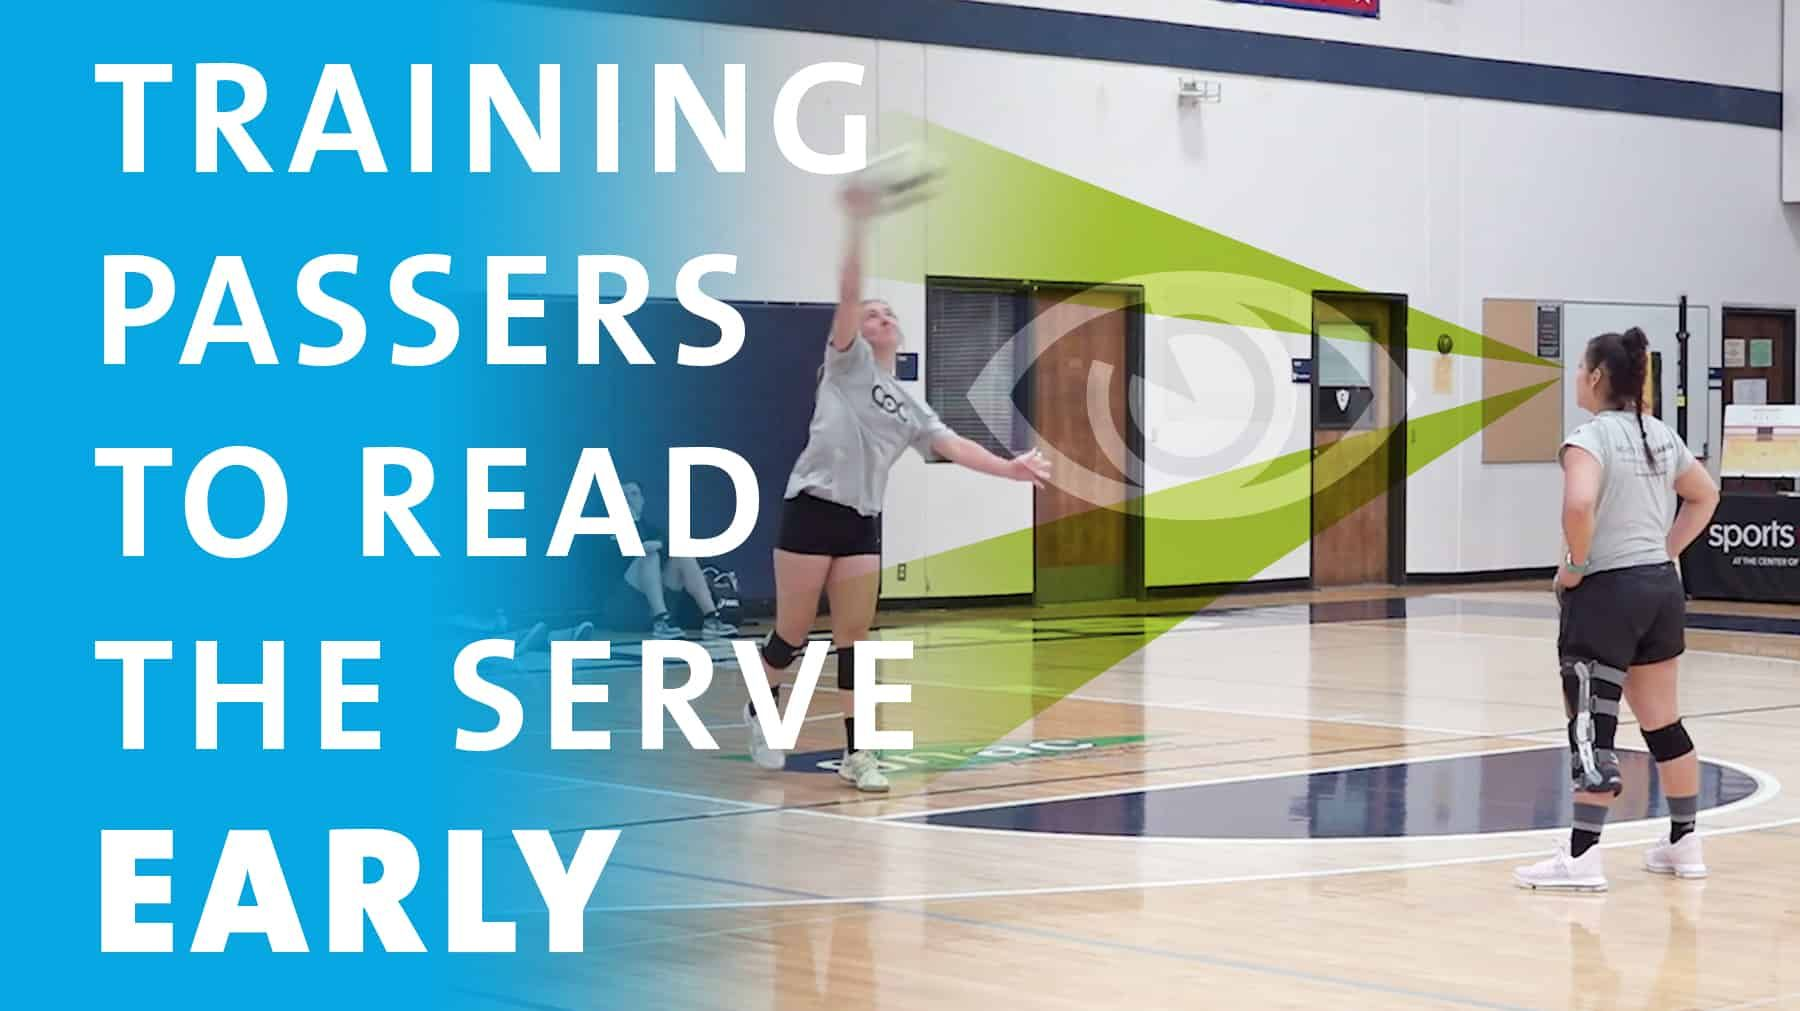 Training Passers To Read The Serve Early The Art Of Coaching Volleyball Coaching Volleyball Volleyball Volleyball Drills